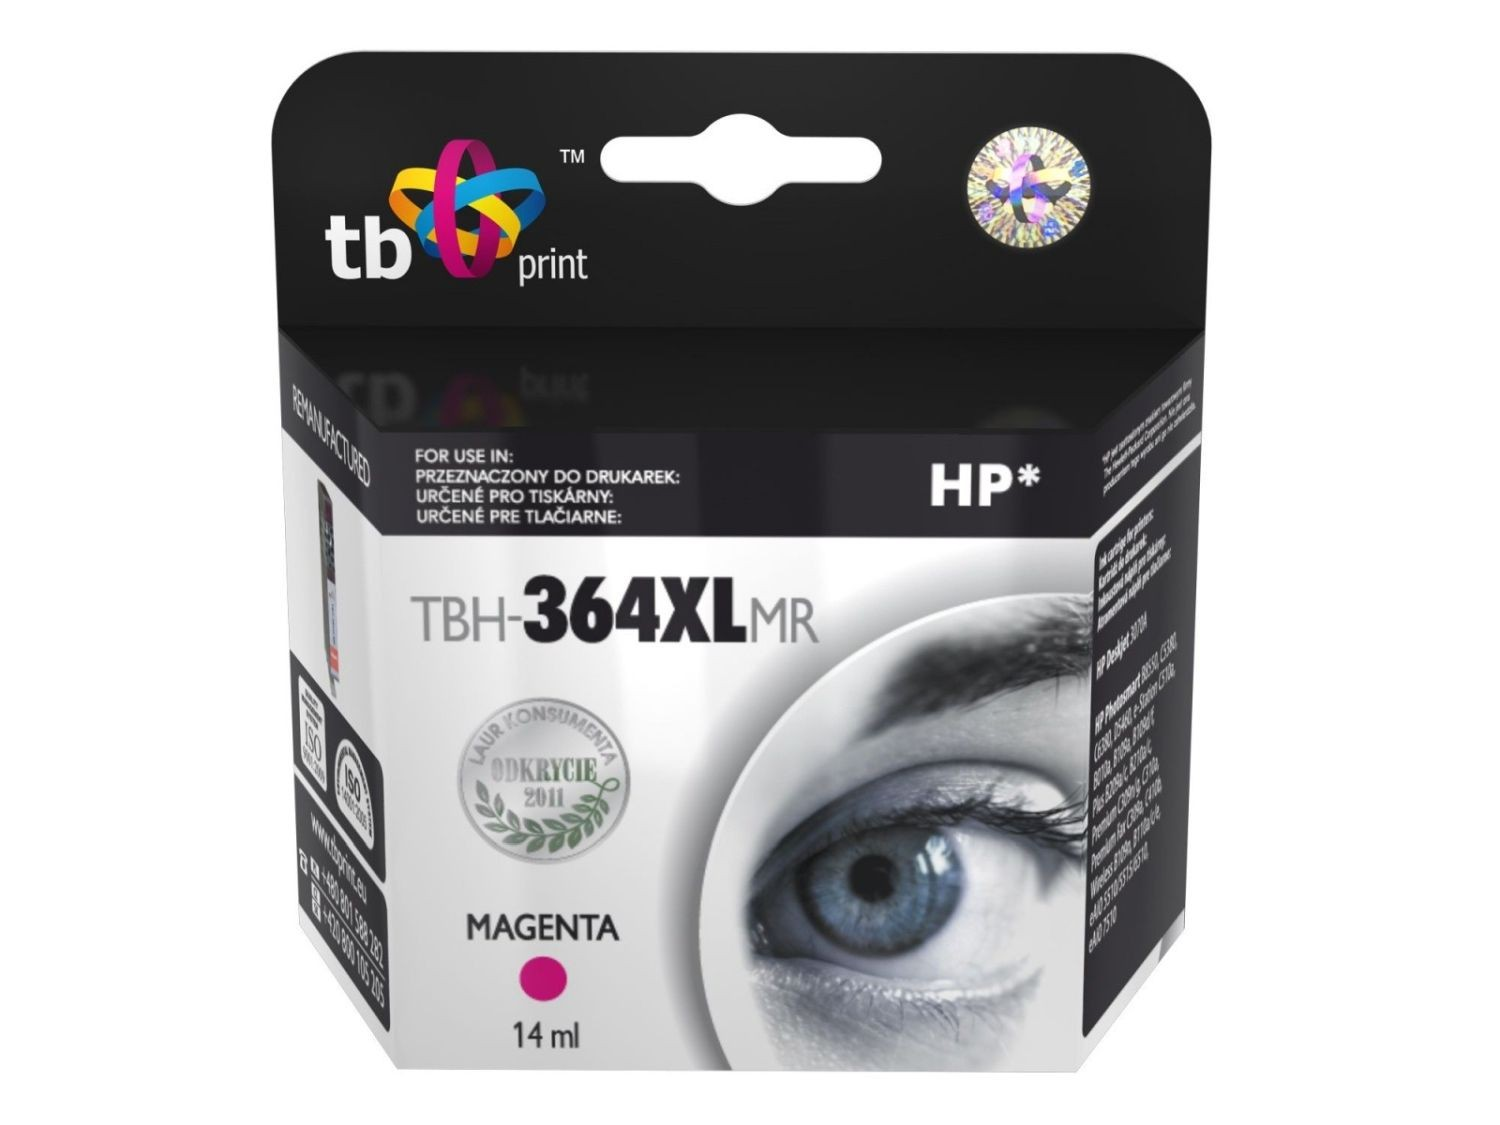 TB Print Tusz do HP PS B8550 TBH-364XLMR MA ref.